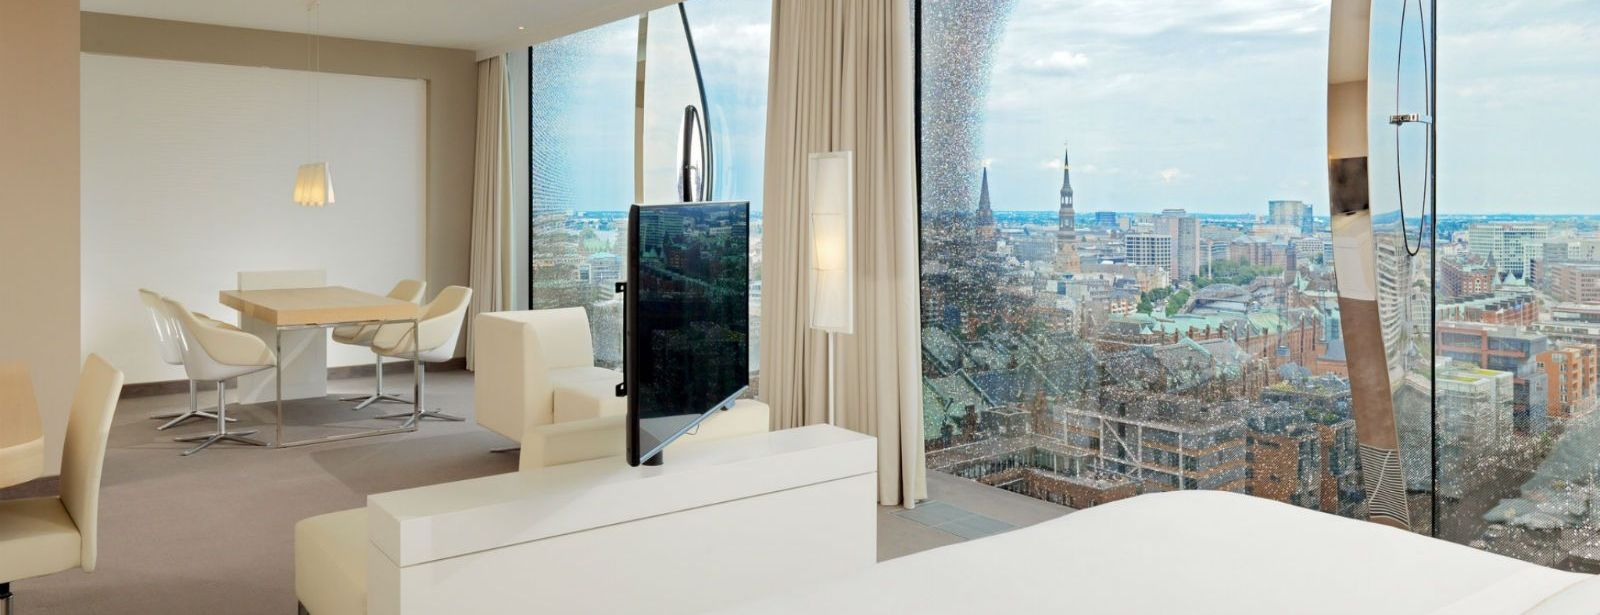 Westin Hamburg Hotel - Stunning view of Hamburg